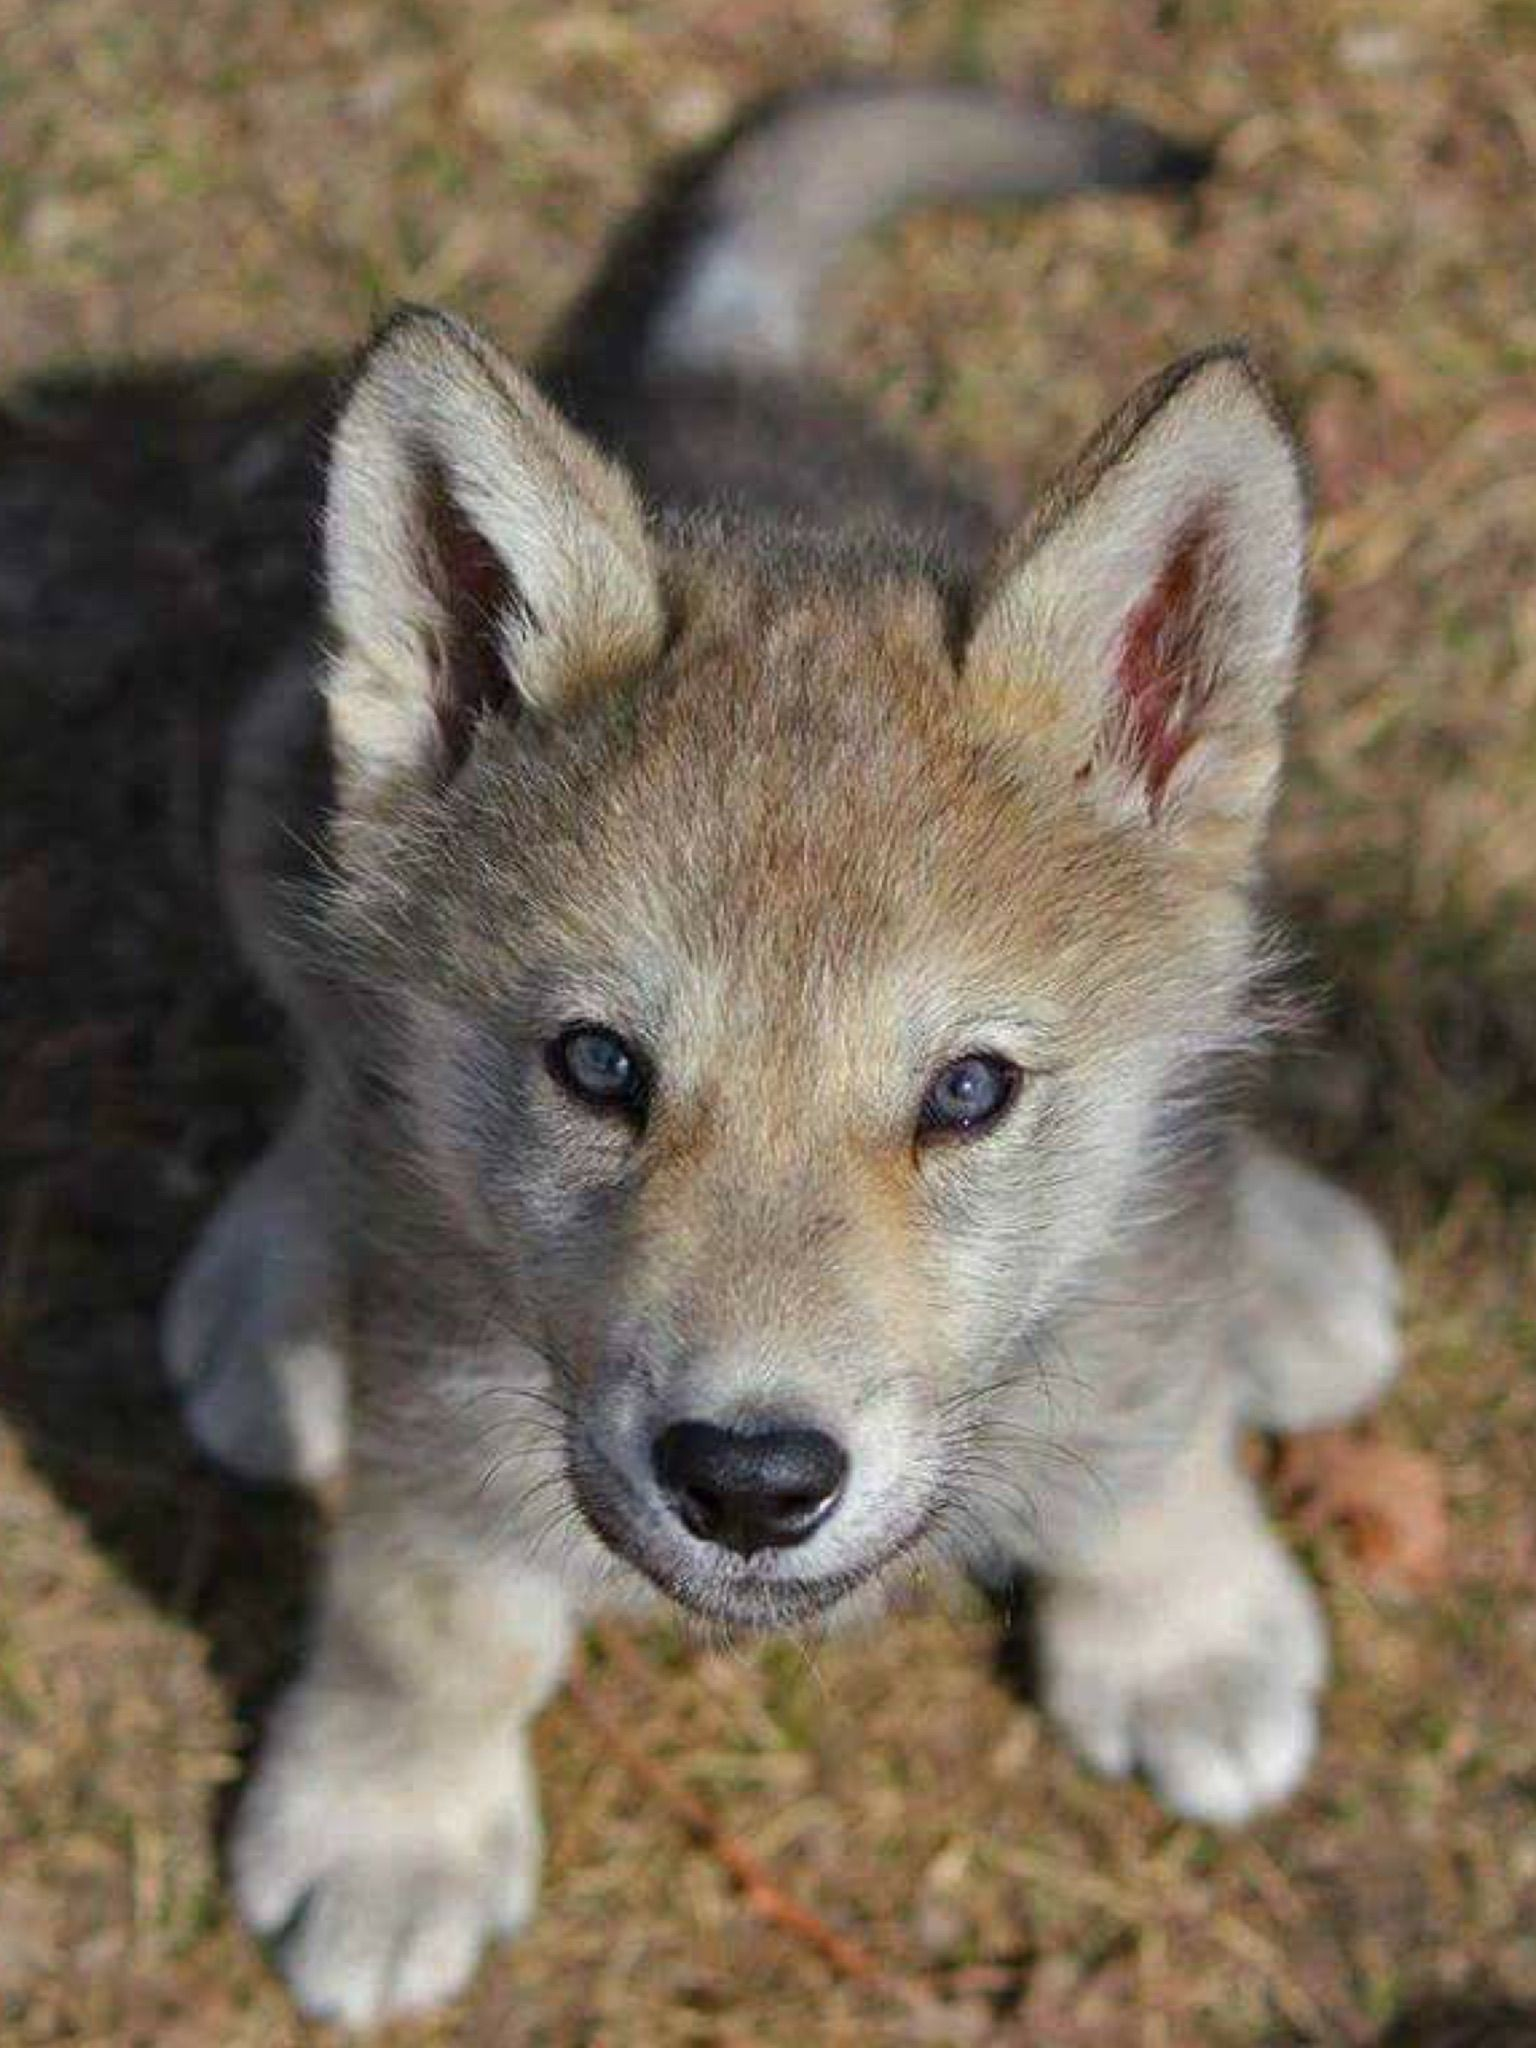 Pin By Tglo On Wolves Beauty In 2020 Baby Wolves Cute Animals Wolf Dog